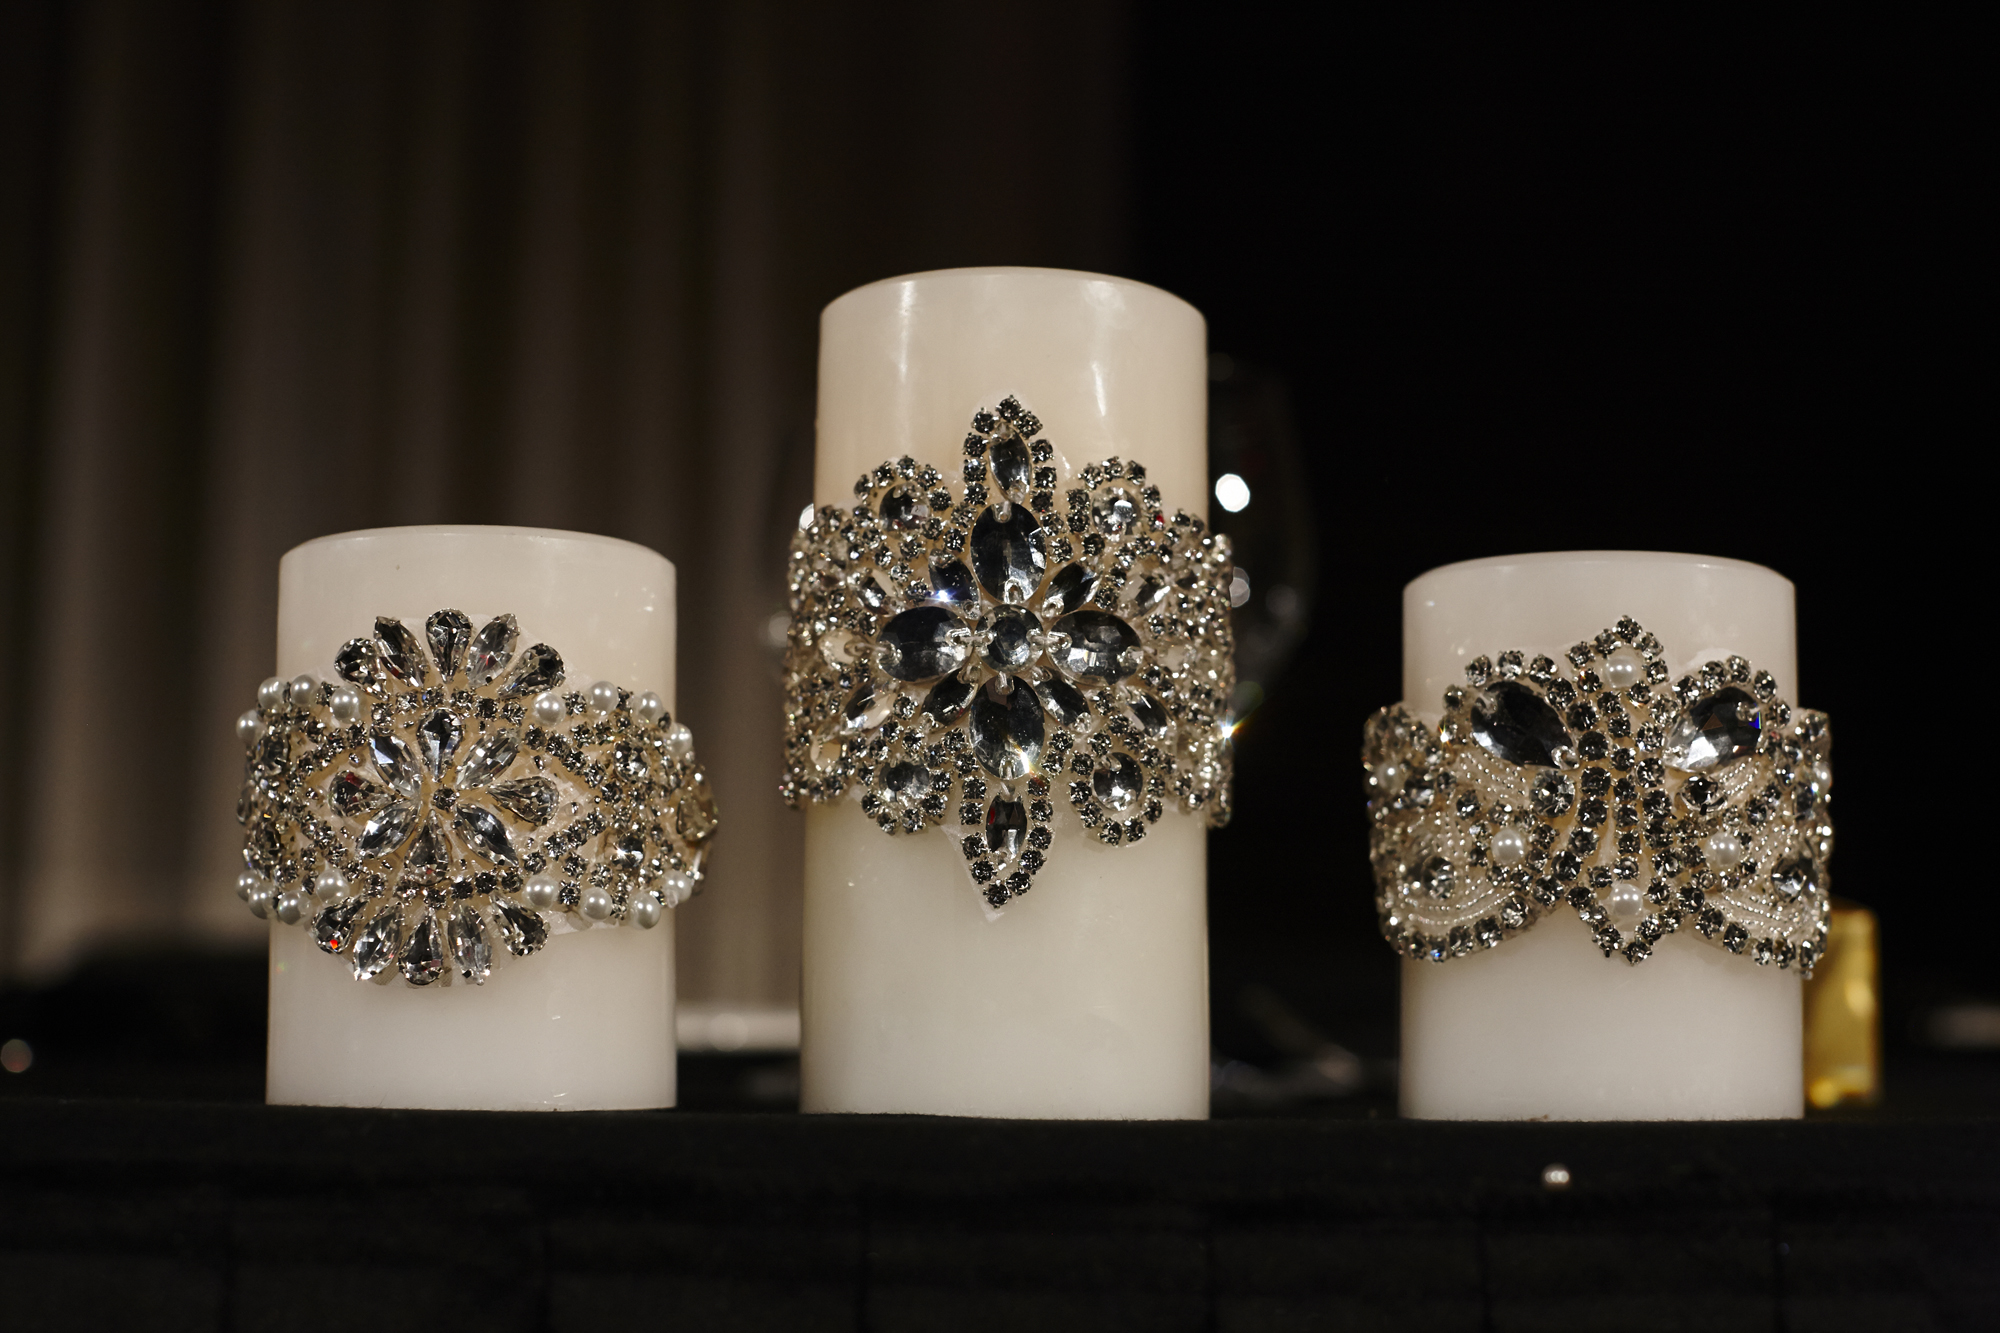 Swarovski crystal Encrusted Led candles